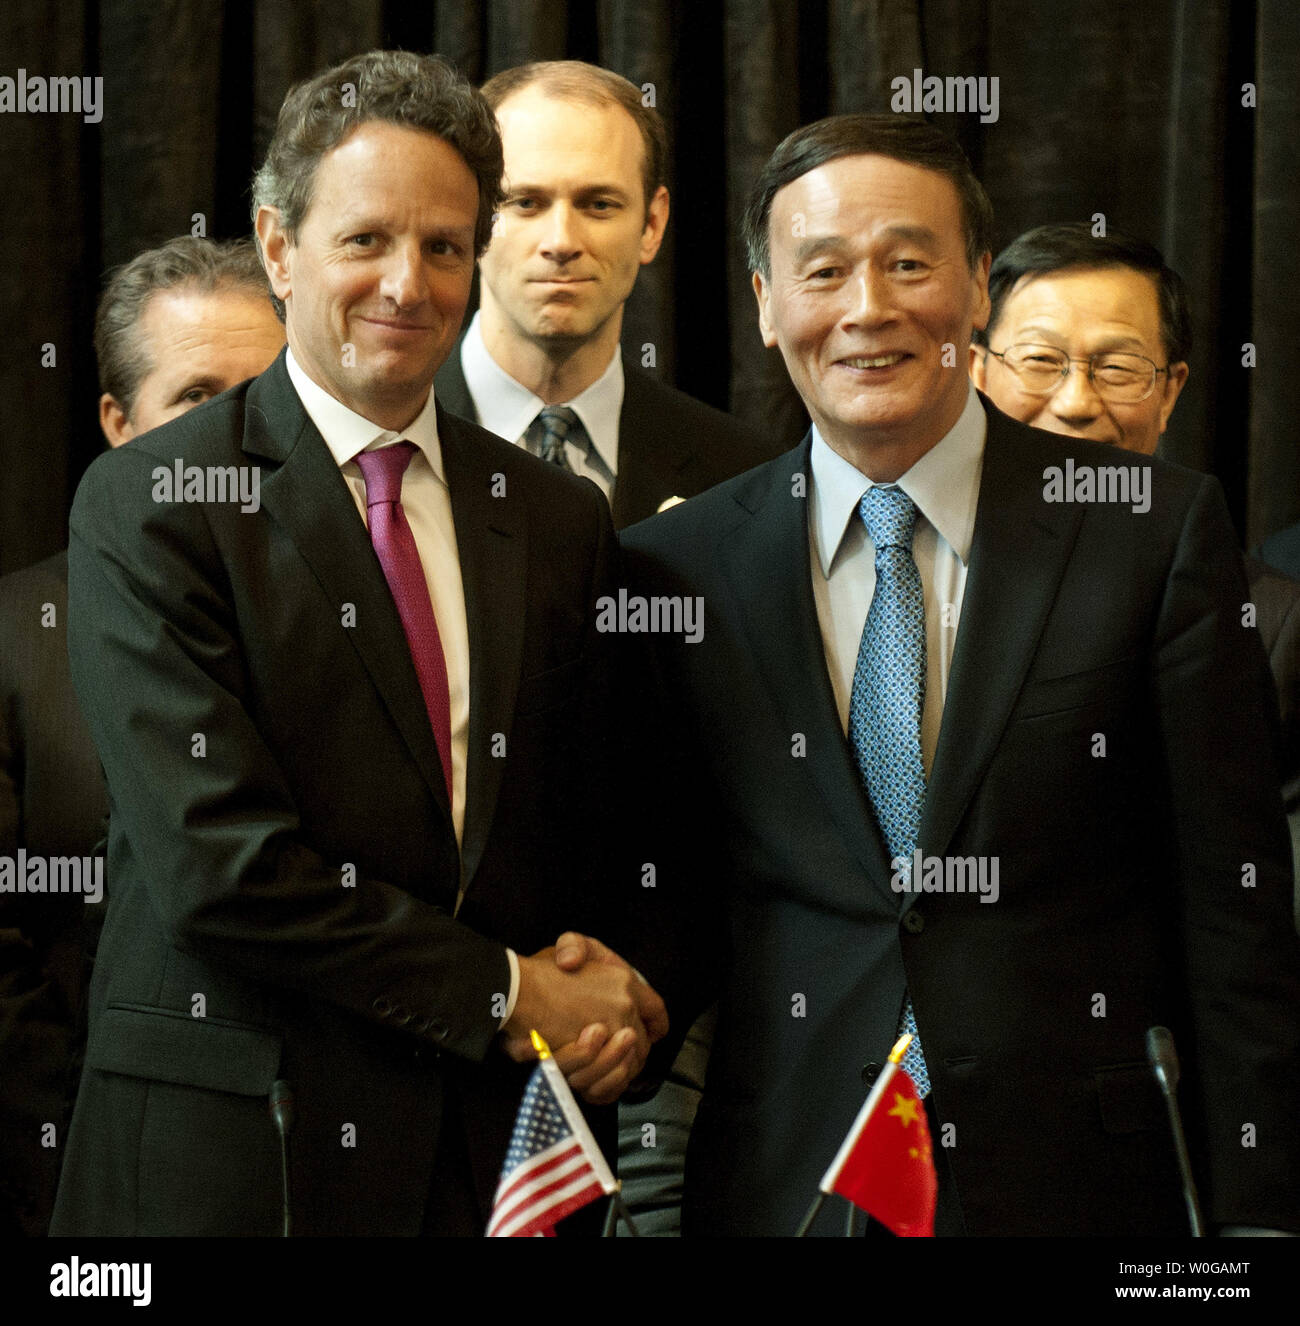 U.S. Treasury Secretary Tim Geithner shakes hands with Chinese Vice Premier Wang Qishan after signing the U.S.-China Comprehensive Framework for Promoting Strong, Sustainable, and Balanced Growth and Economic Cooperation agreement at the Treasury Department in Washington on May 10, 2011.  UPI/Kevin Dietsch - Stock Image